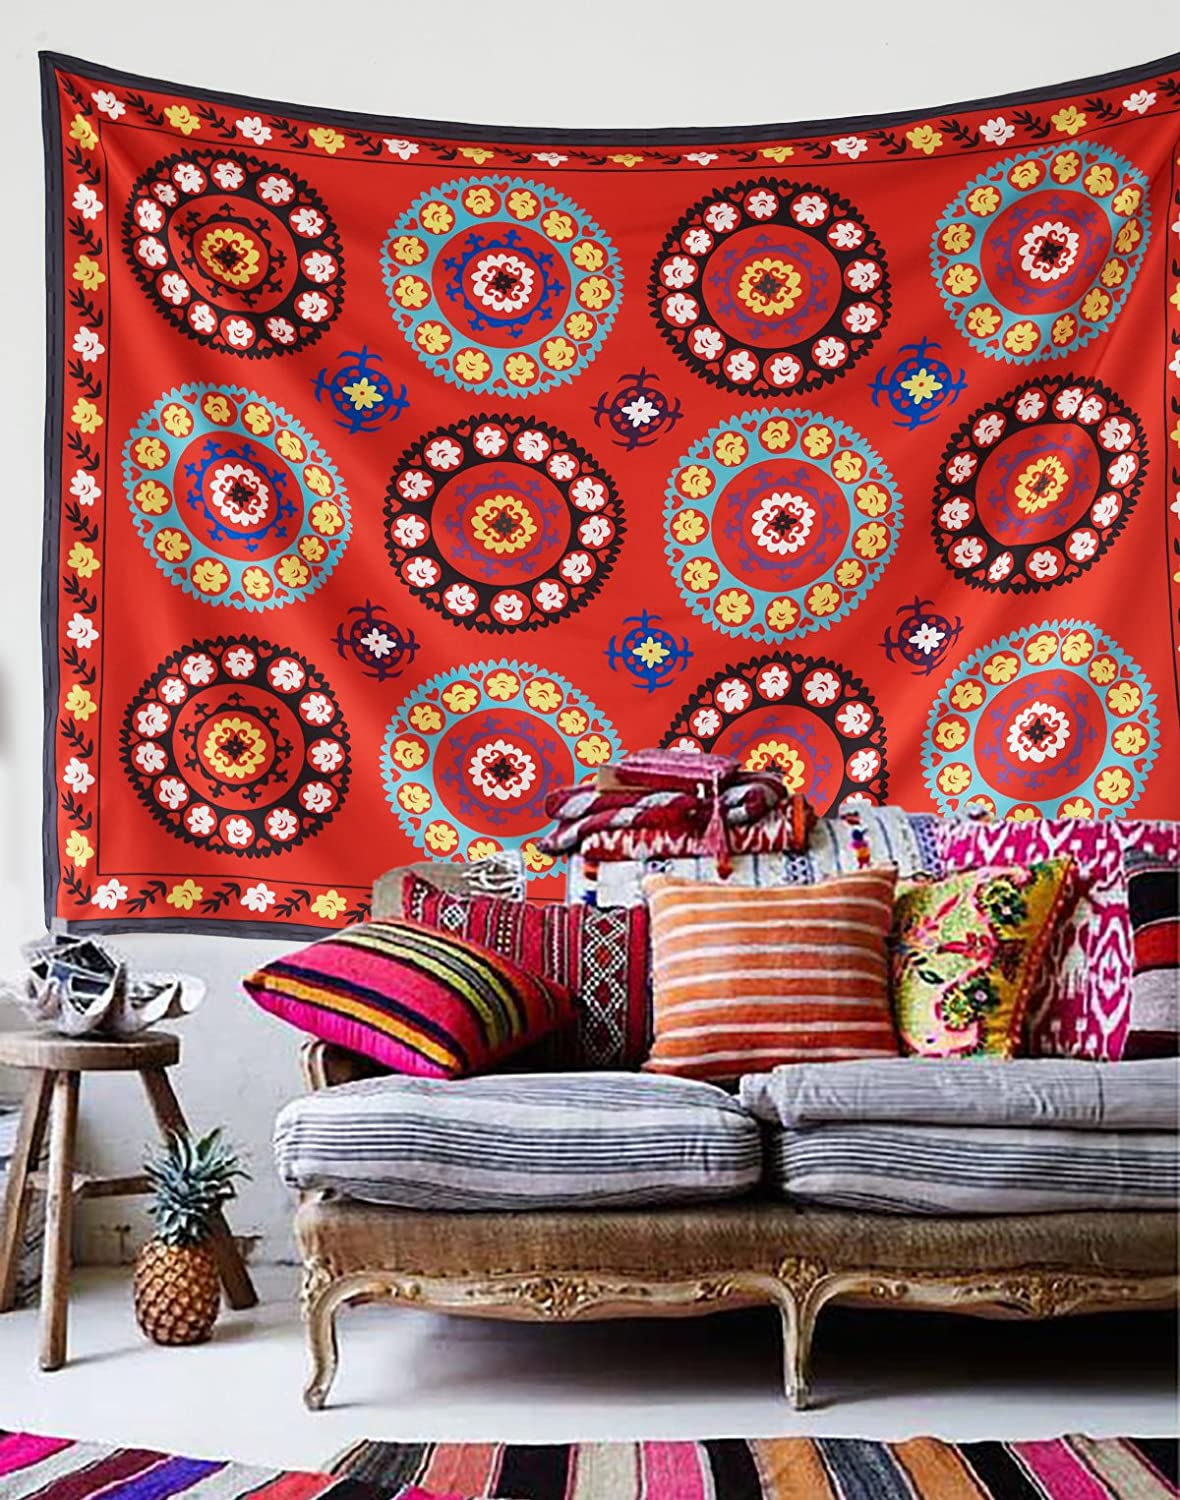 """Uzbek Suzani Morocco Wall Tapestry Red Wall Hanging Floral Wall decor Home Decor,60""""x 80"""",Twin Size"""